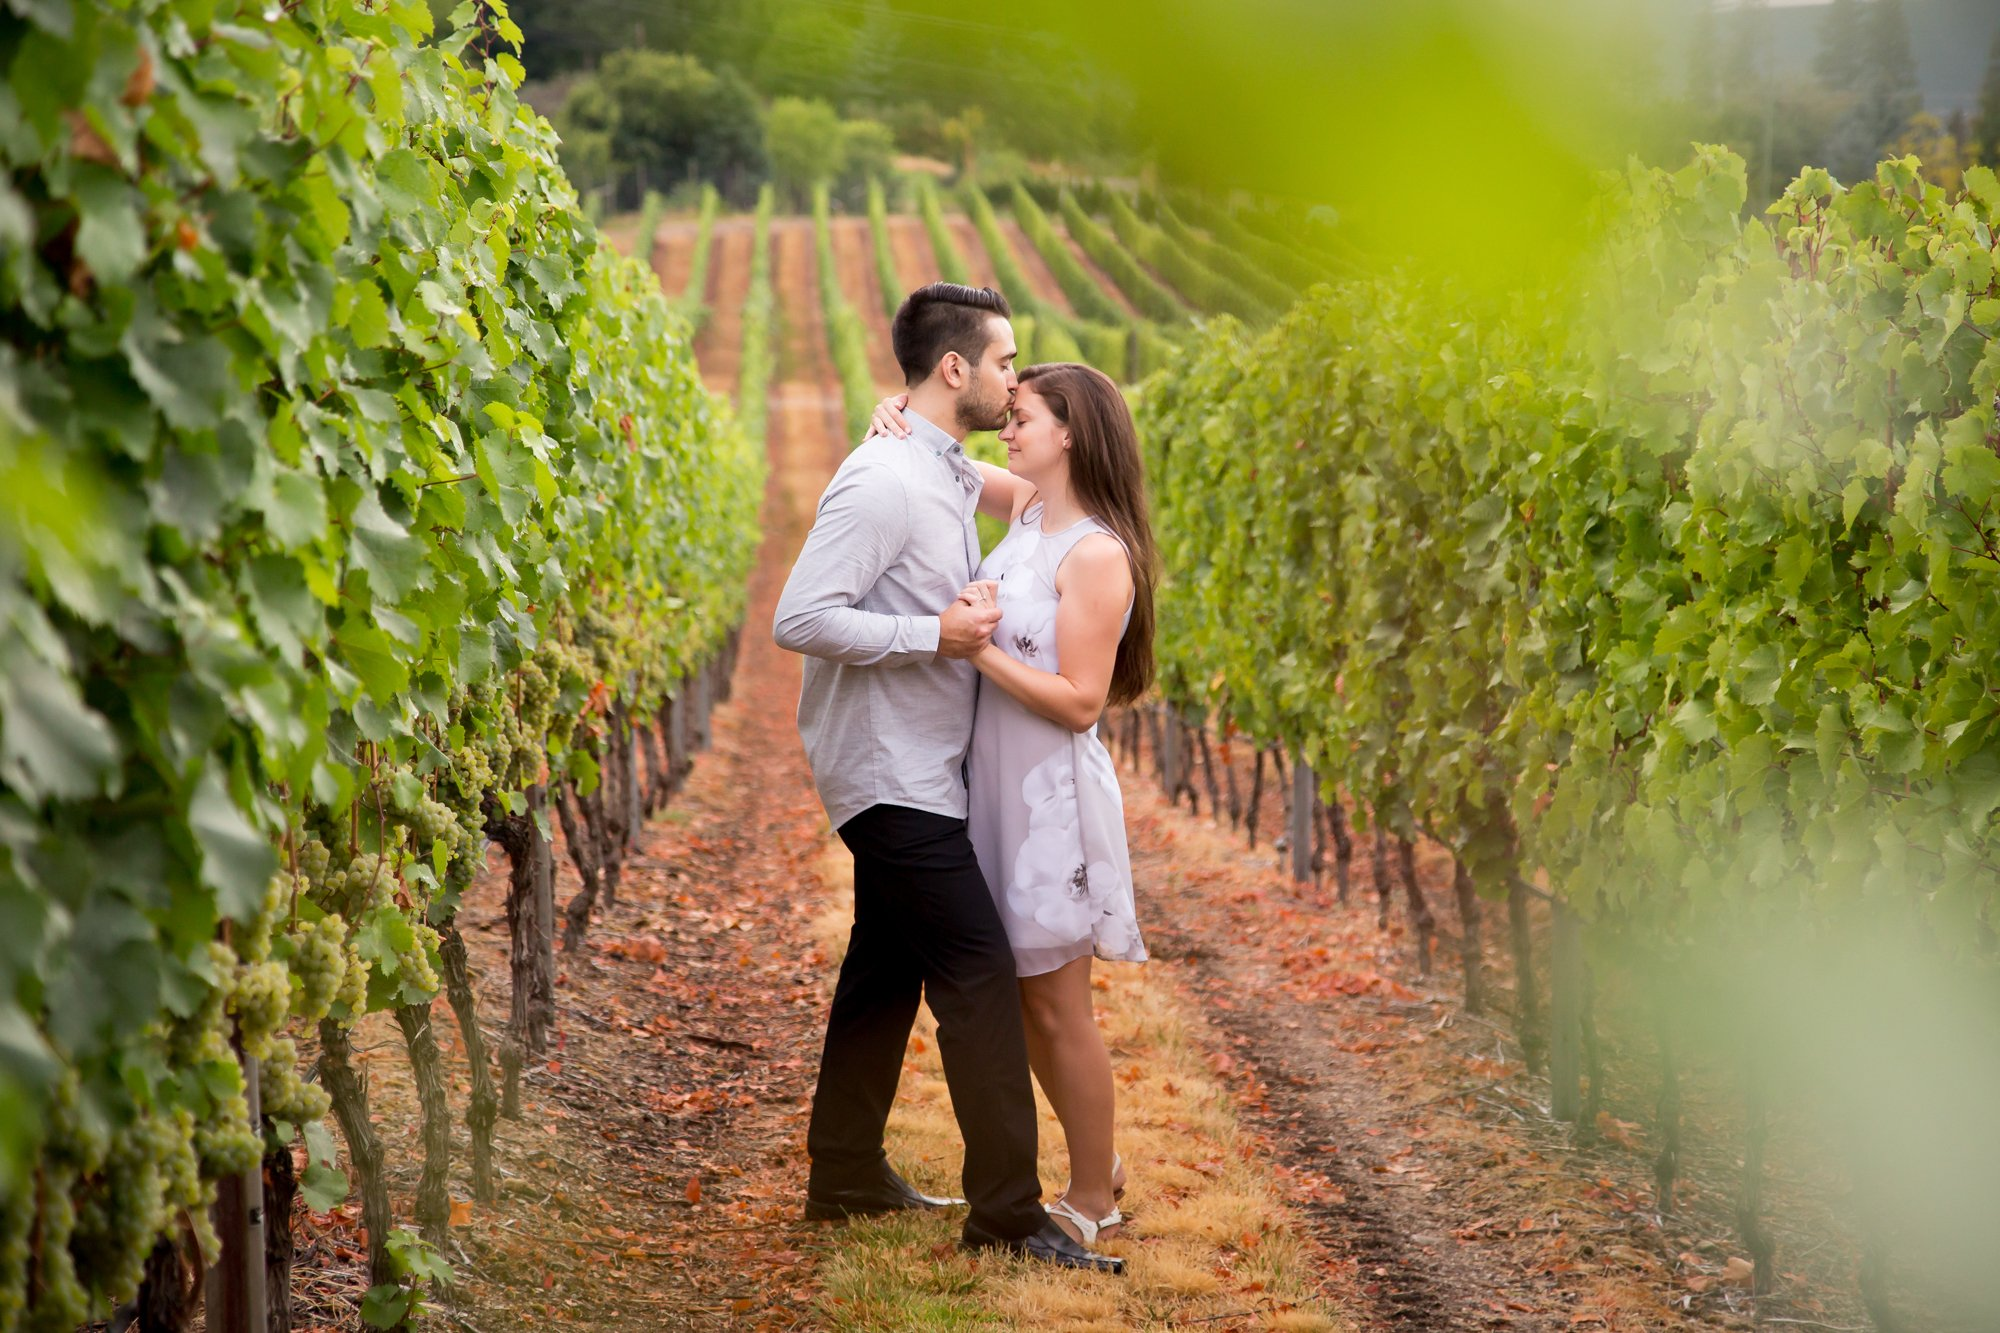 A couple together in a vineyard row